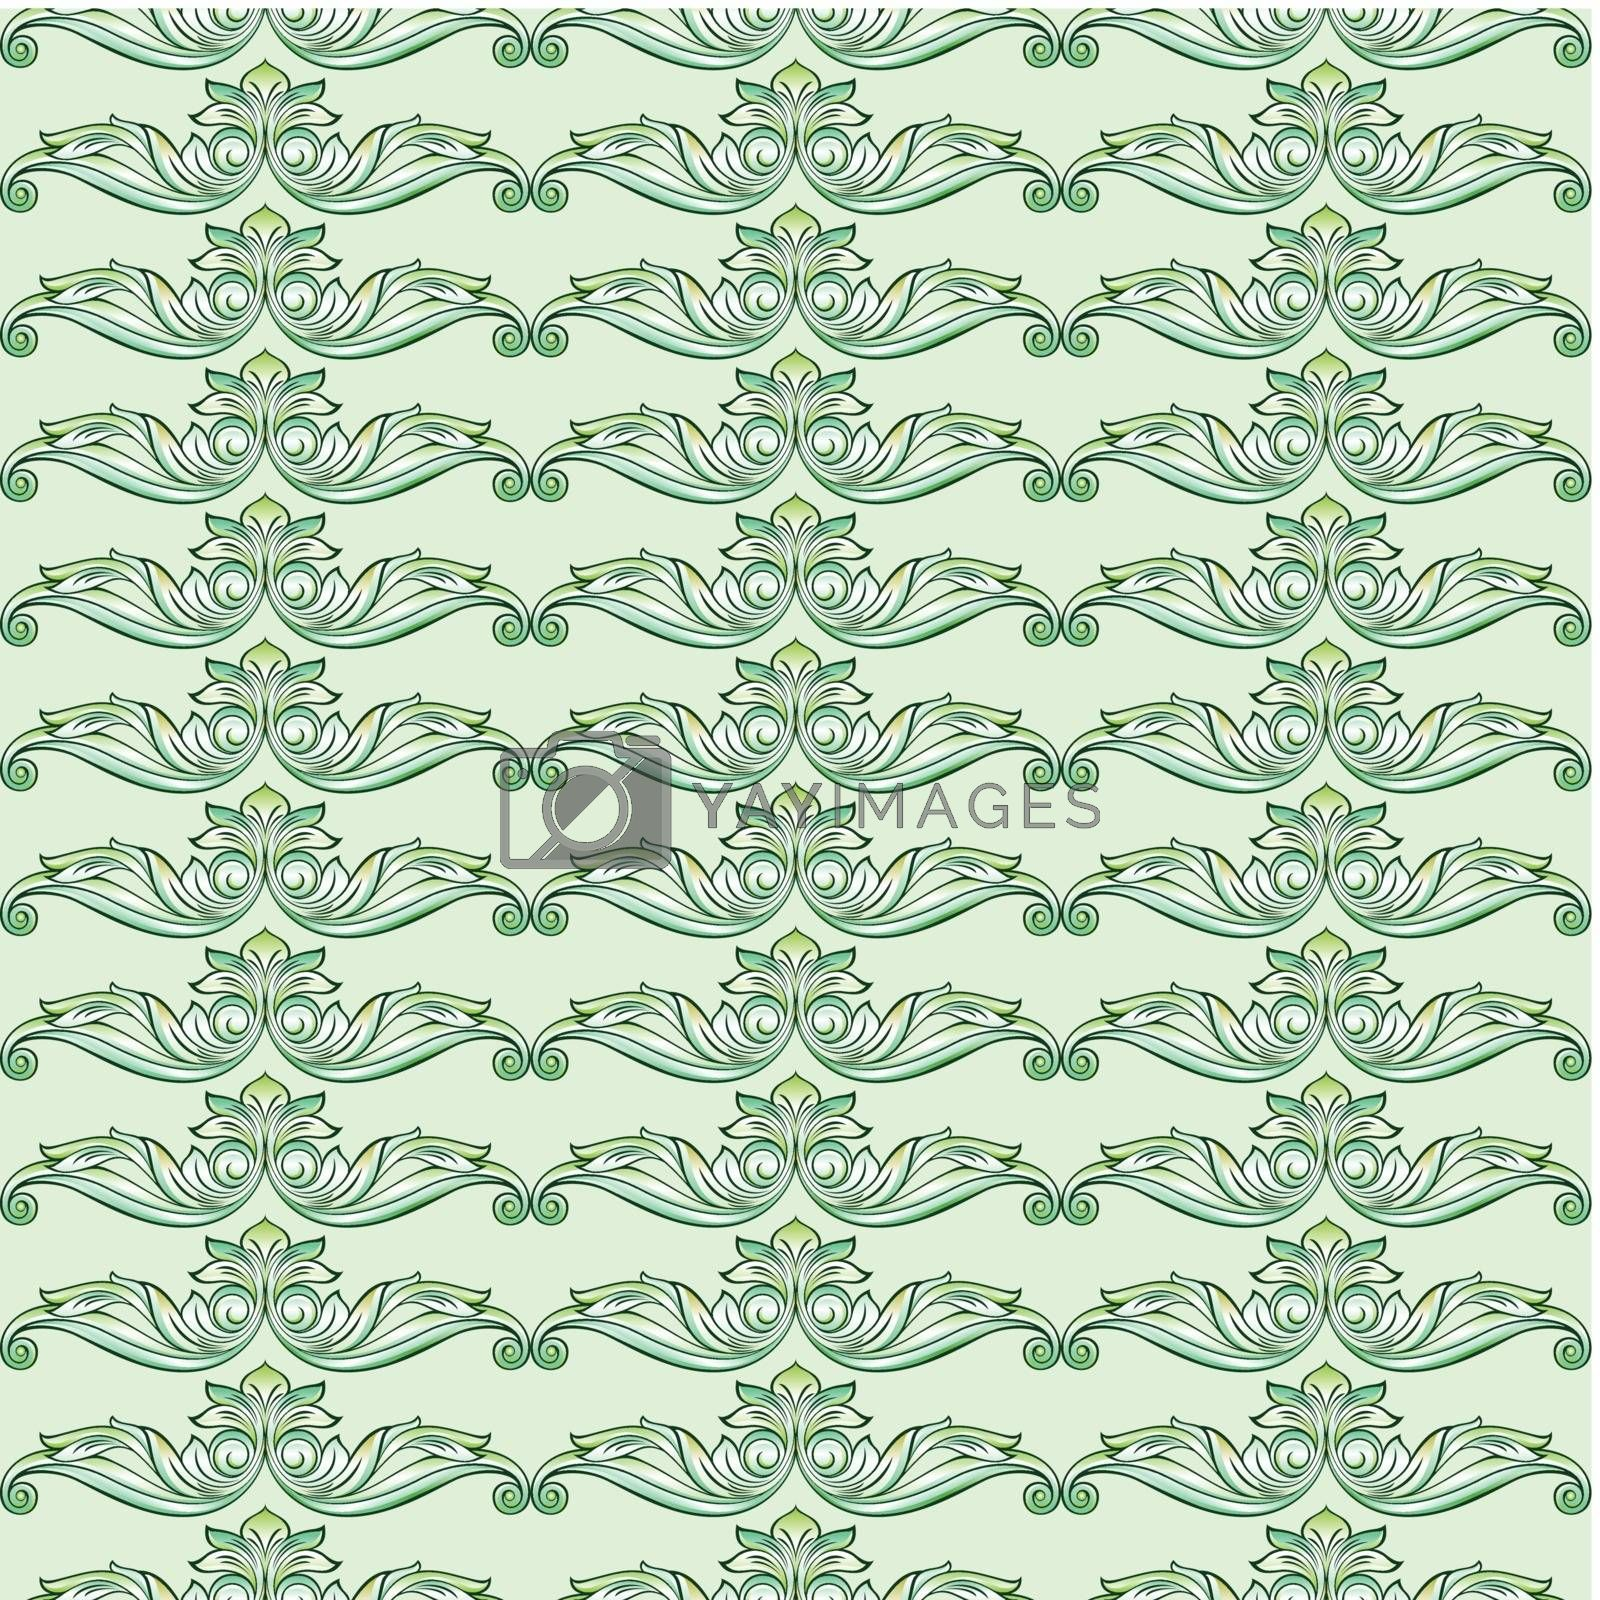 Royalty free image of Seamless floral pattern by dvarg